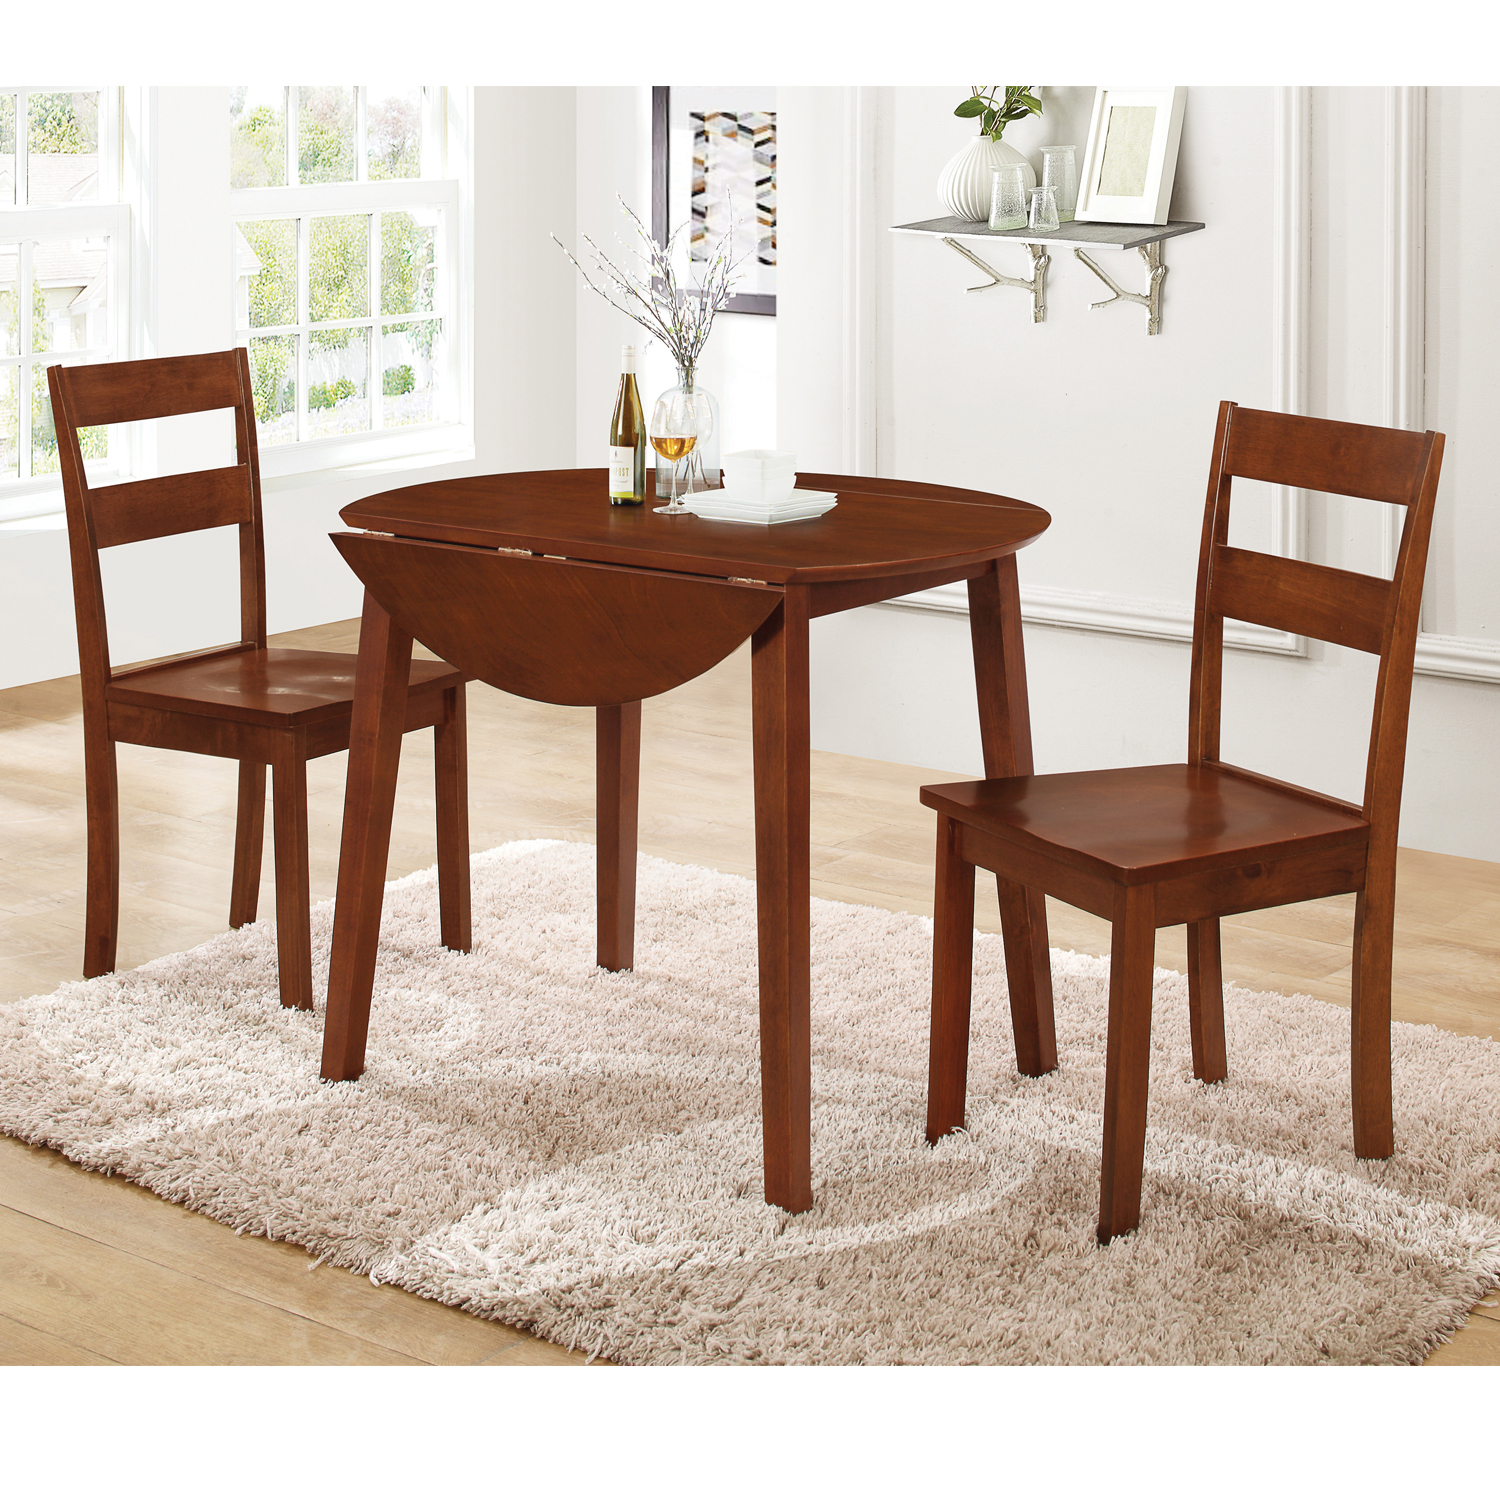 Home Source Country Style Dining Drop Leaf Table Walmart Com Walmart Com